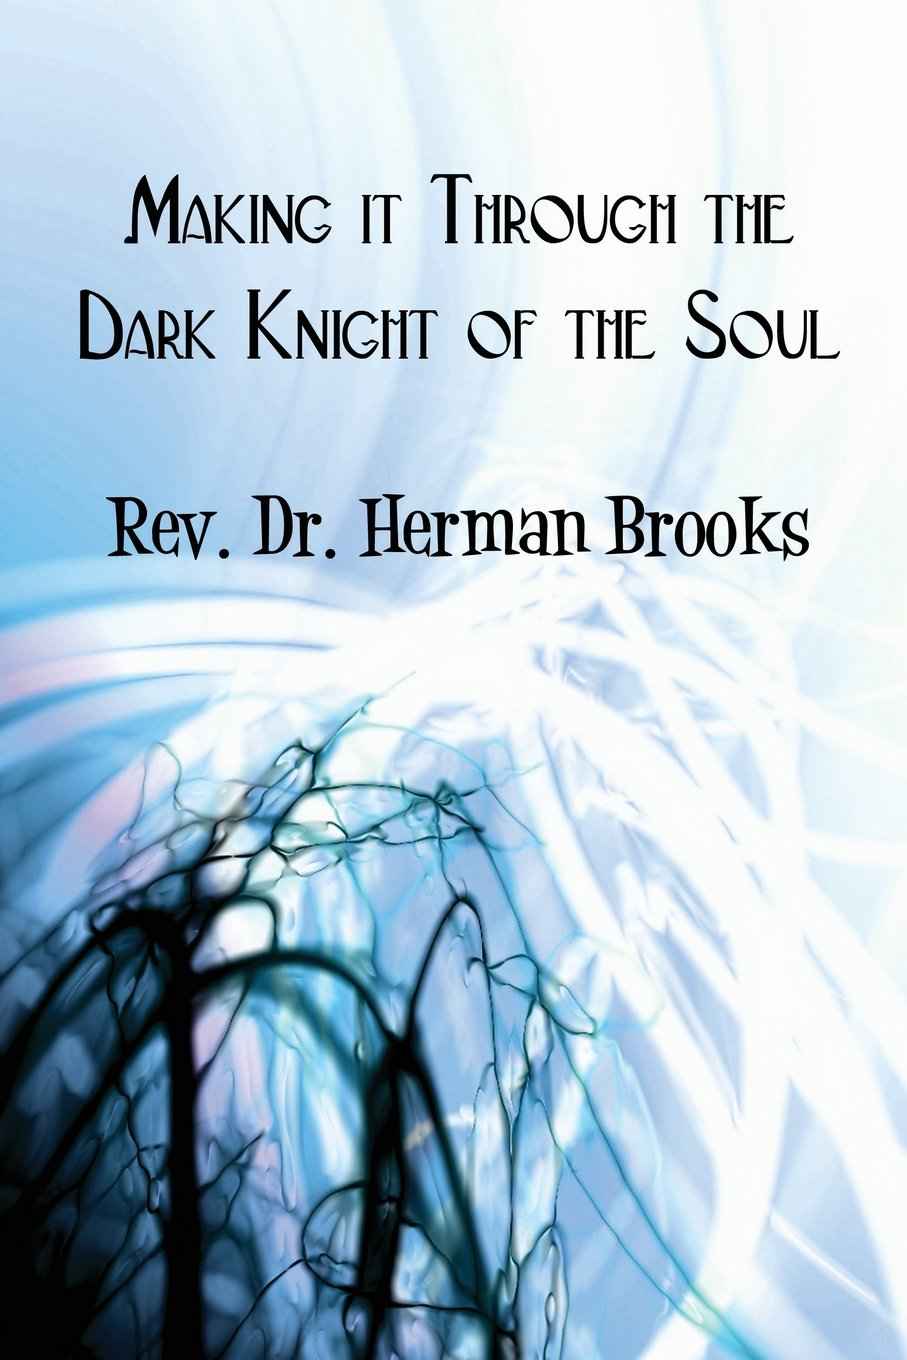 Making It Through the Dark Night of the Soul by Dr. Herman Brooks